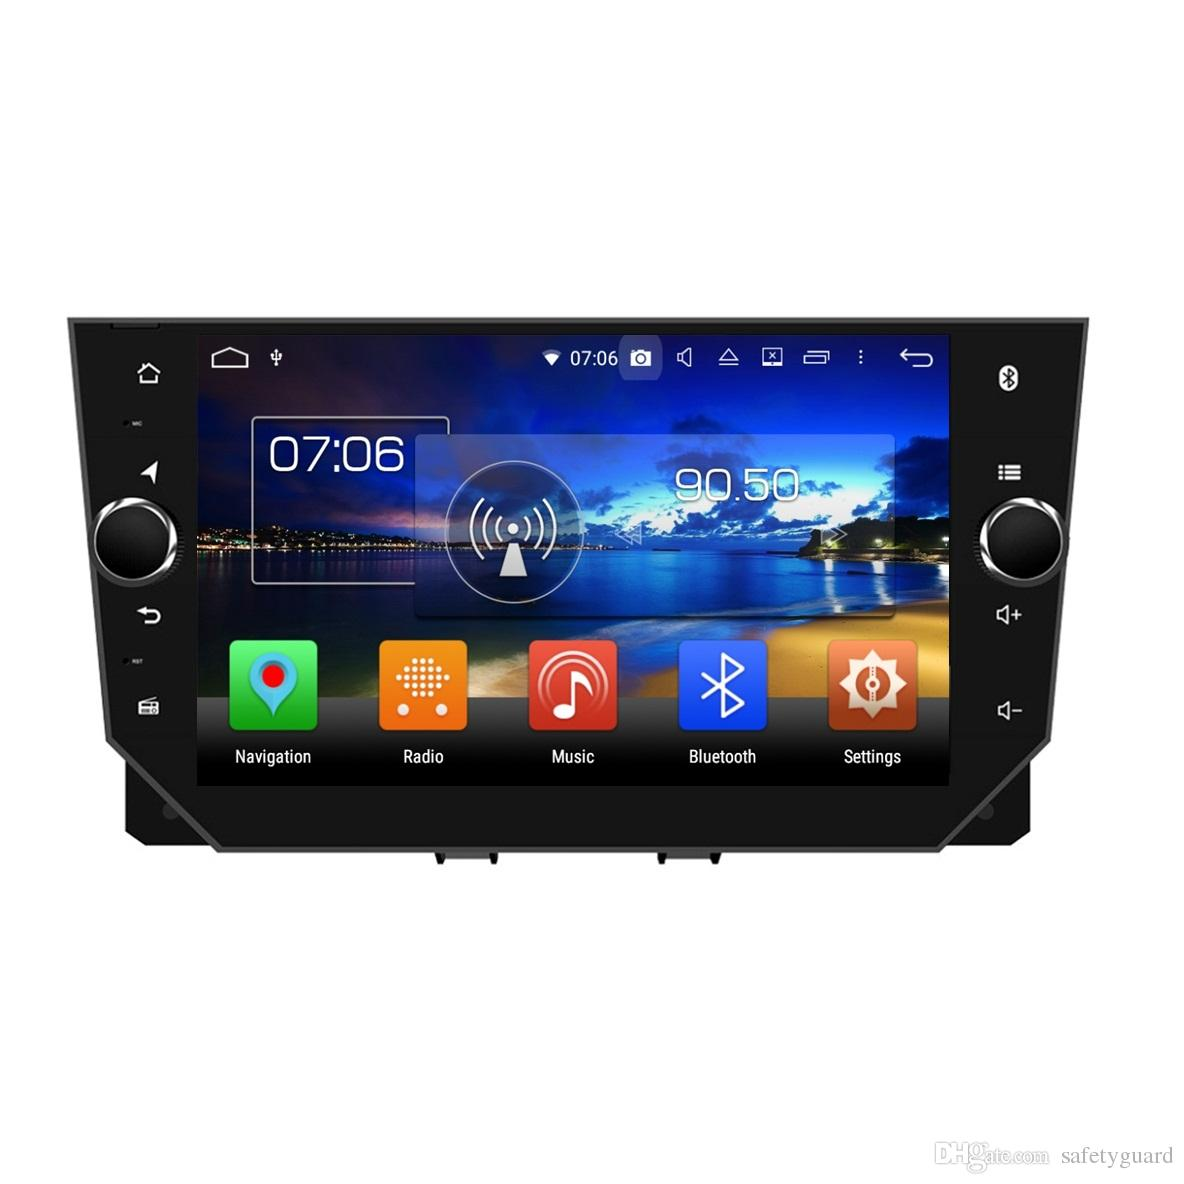 8 Core PX5 4GB+64GB Android 8.0 Car DVD Stereo Radio DVD GPS Head Unit for SEAT Ibiza 2018 Bluetooth WIFI USB DVR Mirror link